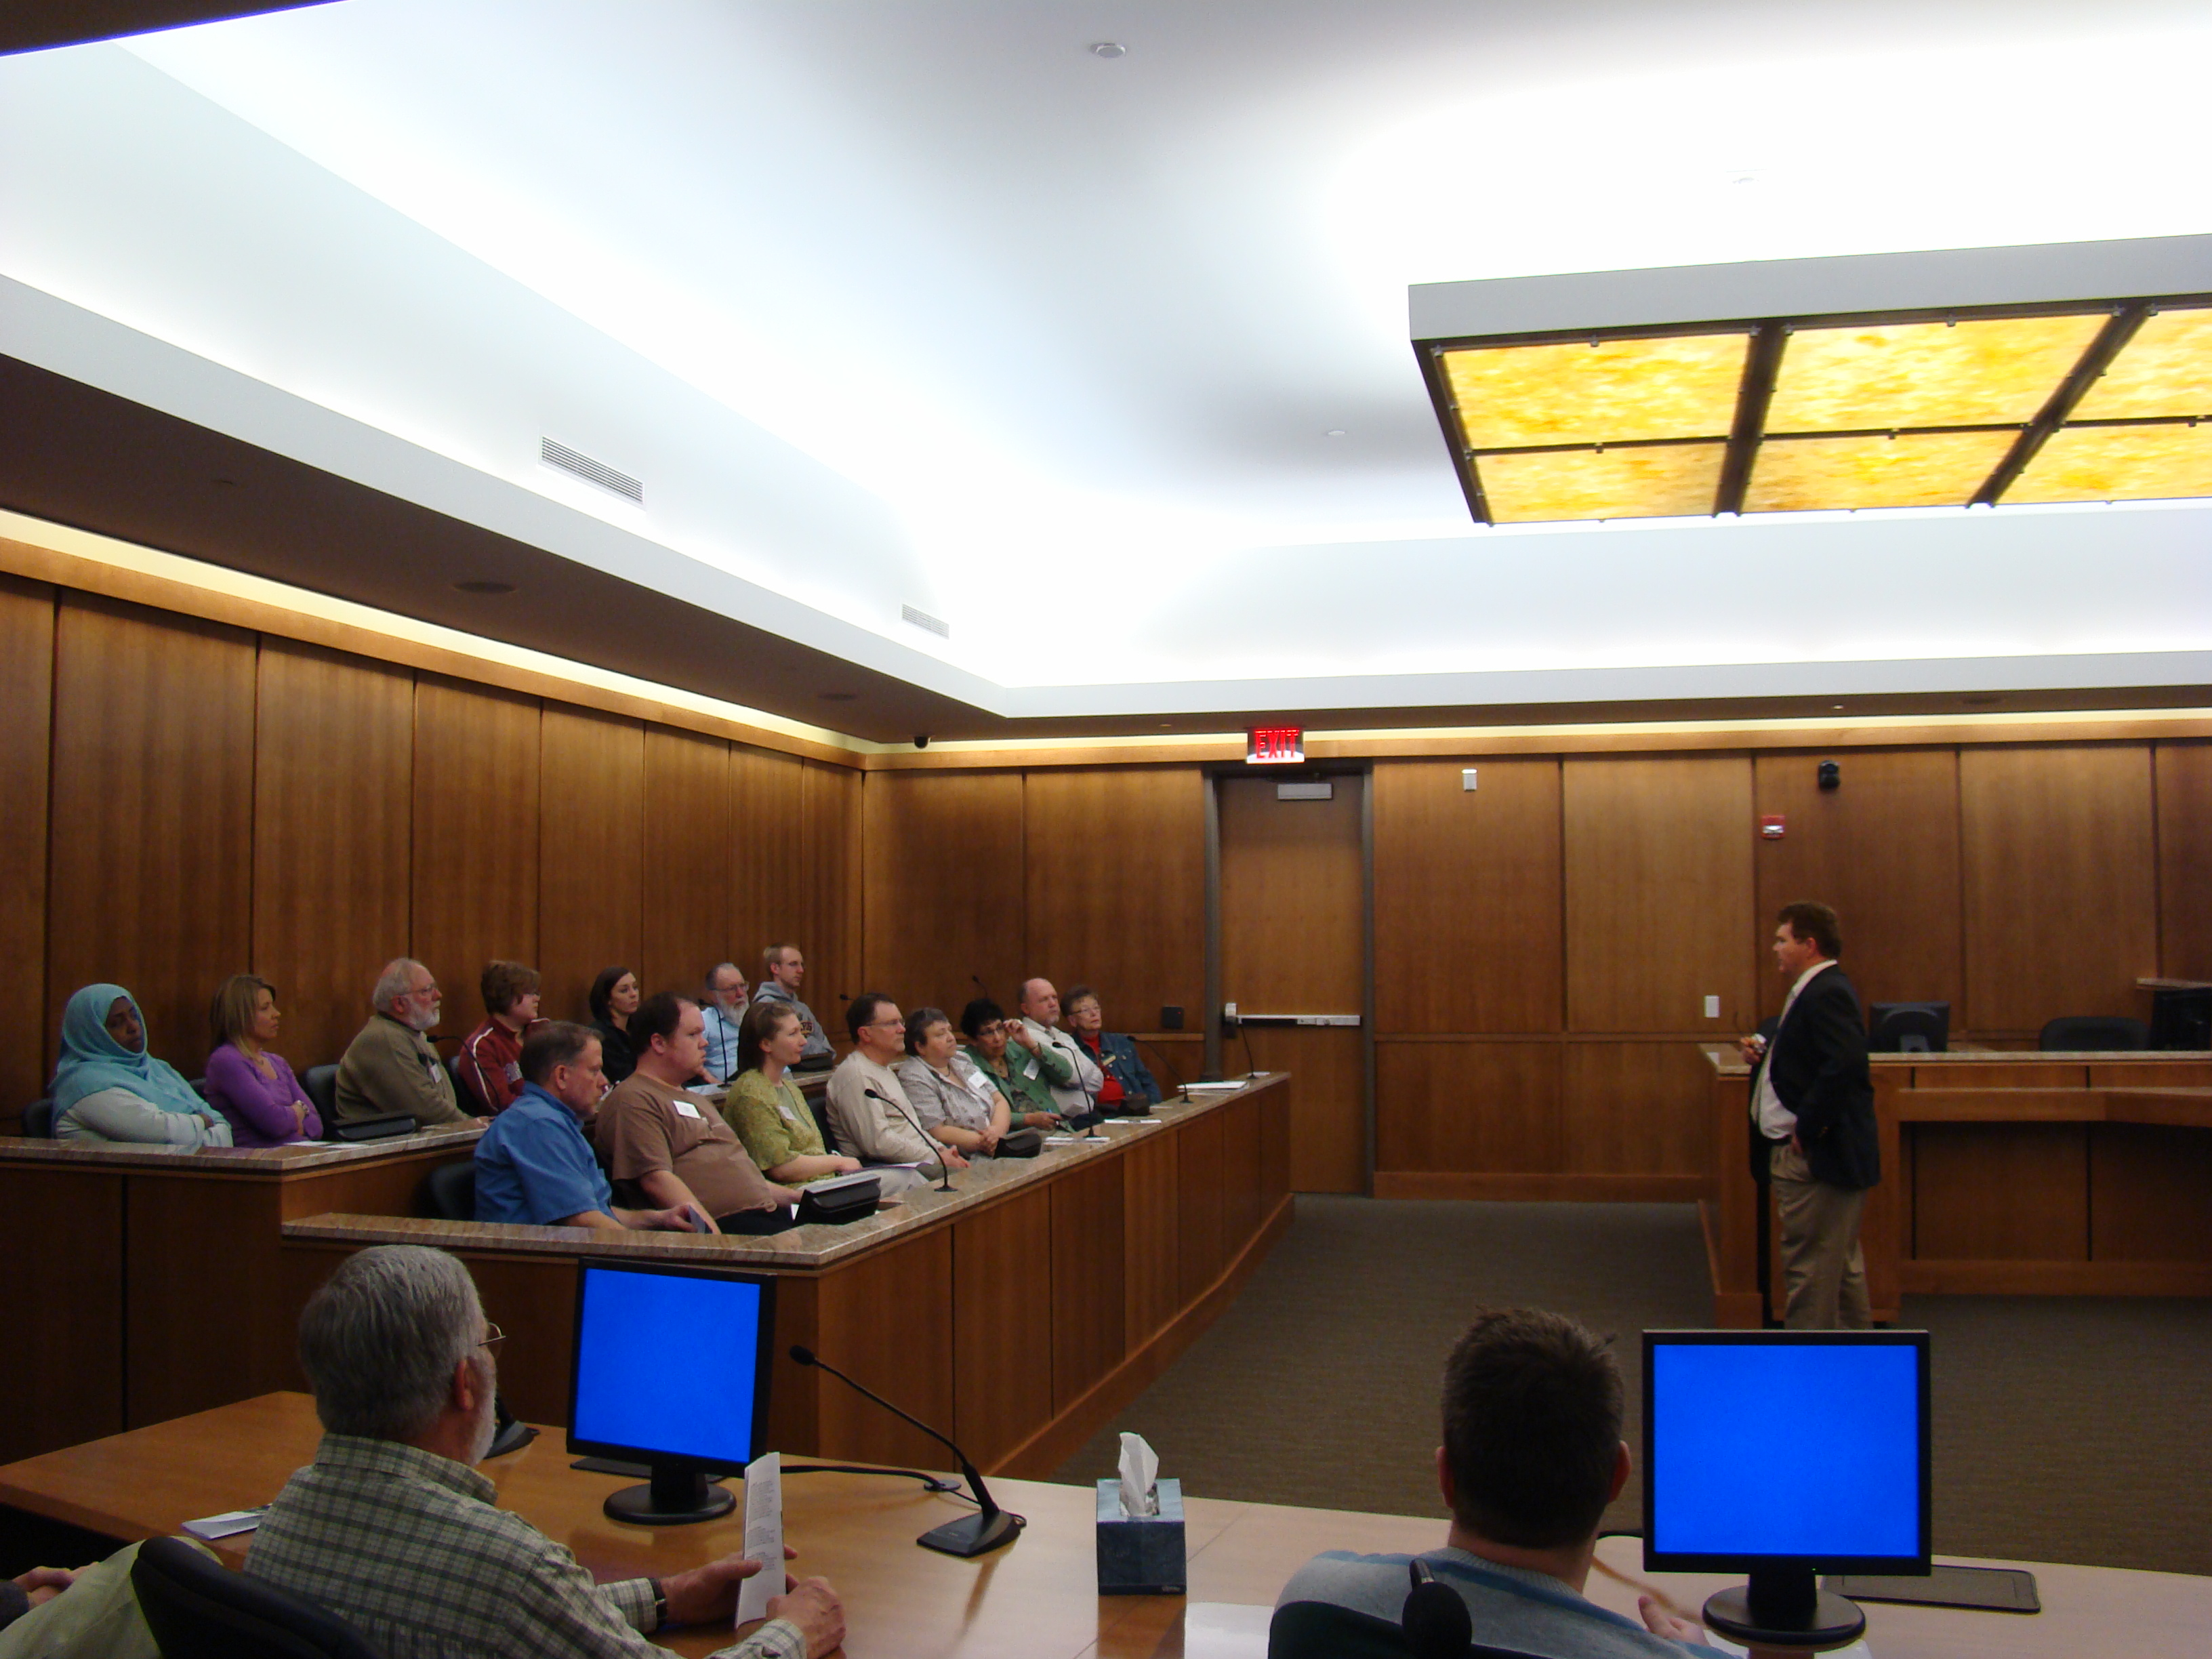 County Attorney Ross Arneson presents to the Citizens Academy group in a court room.